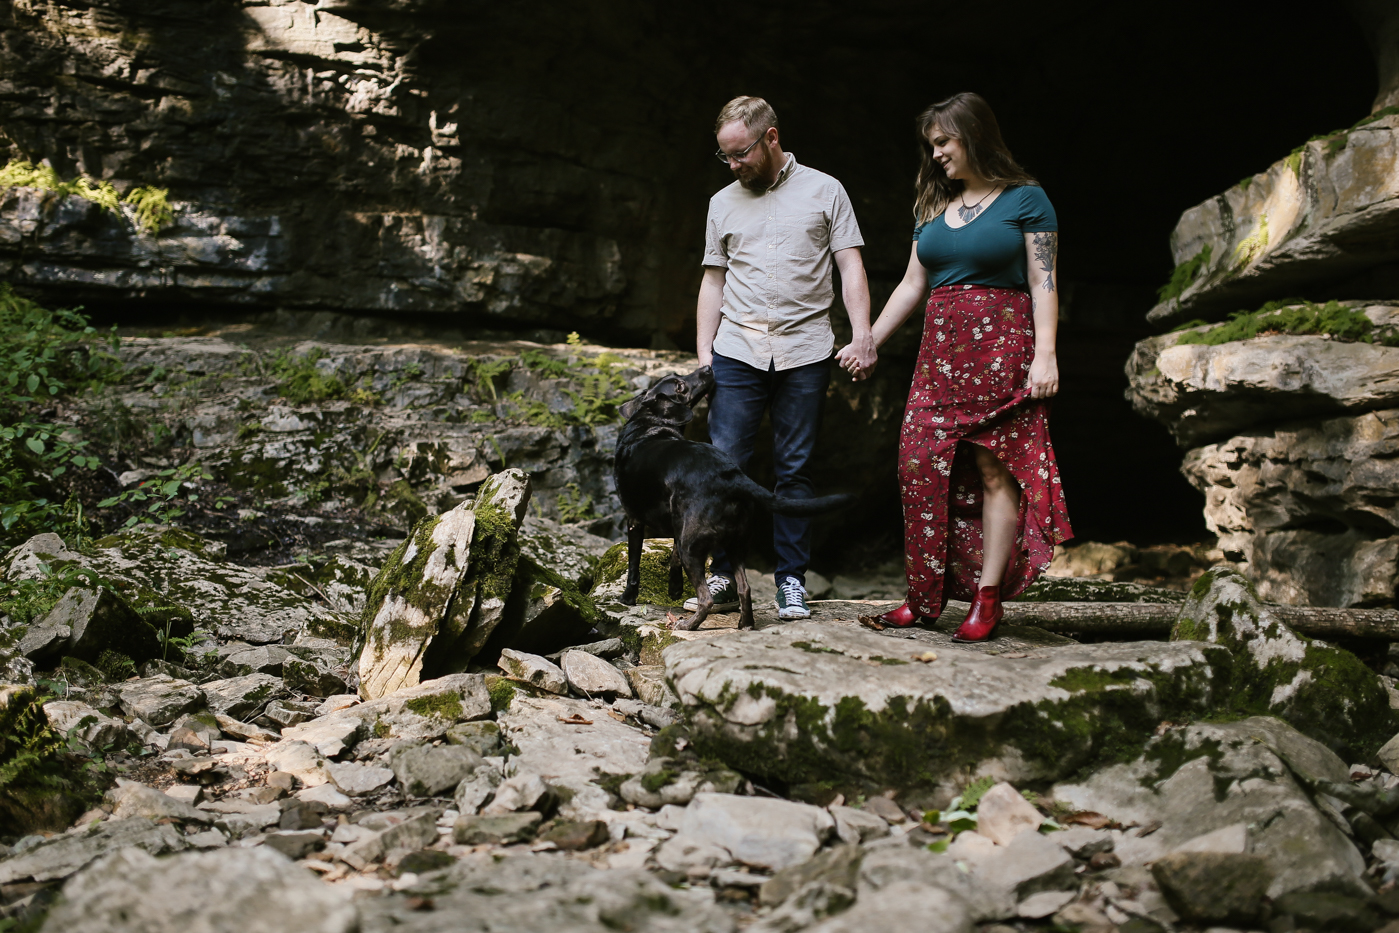 Eastern-Kentucky-Outdoors-Cave-Engagement-Photography-11.jpg